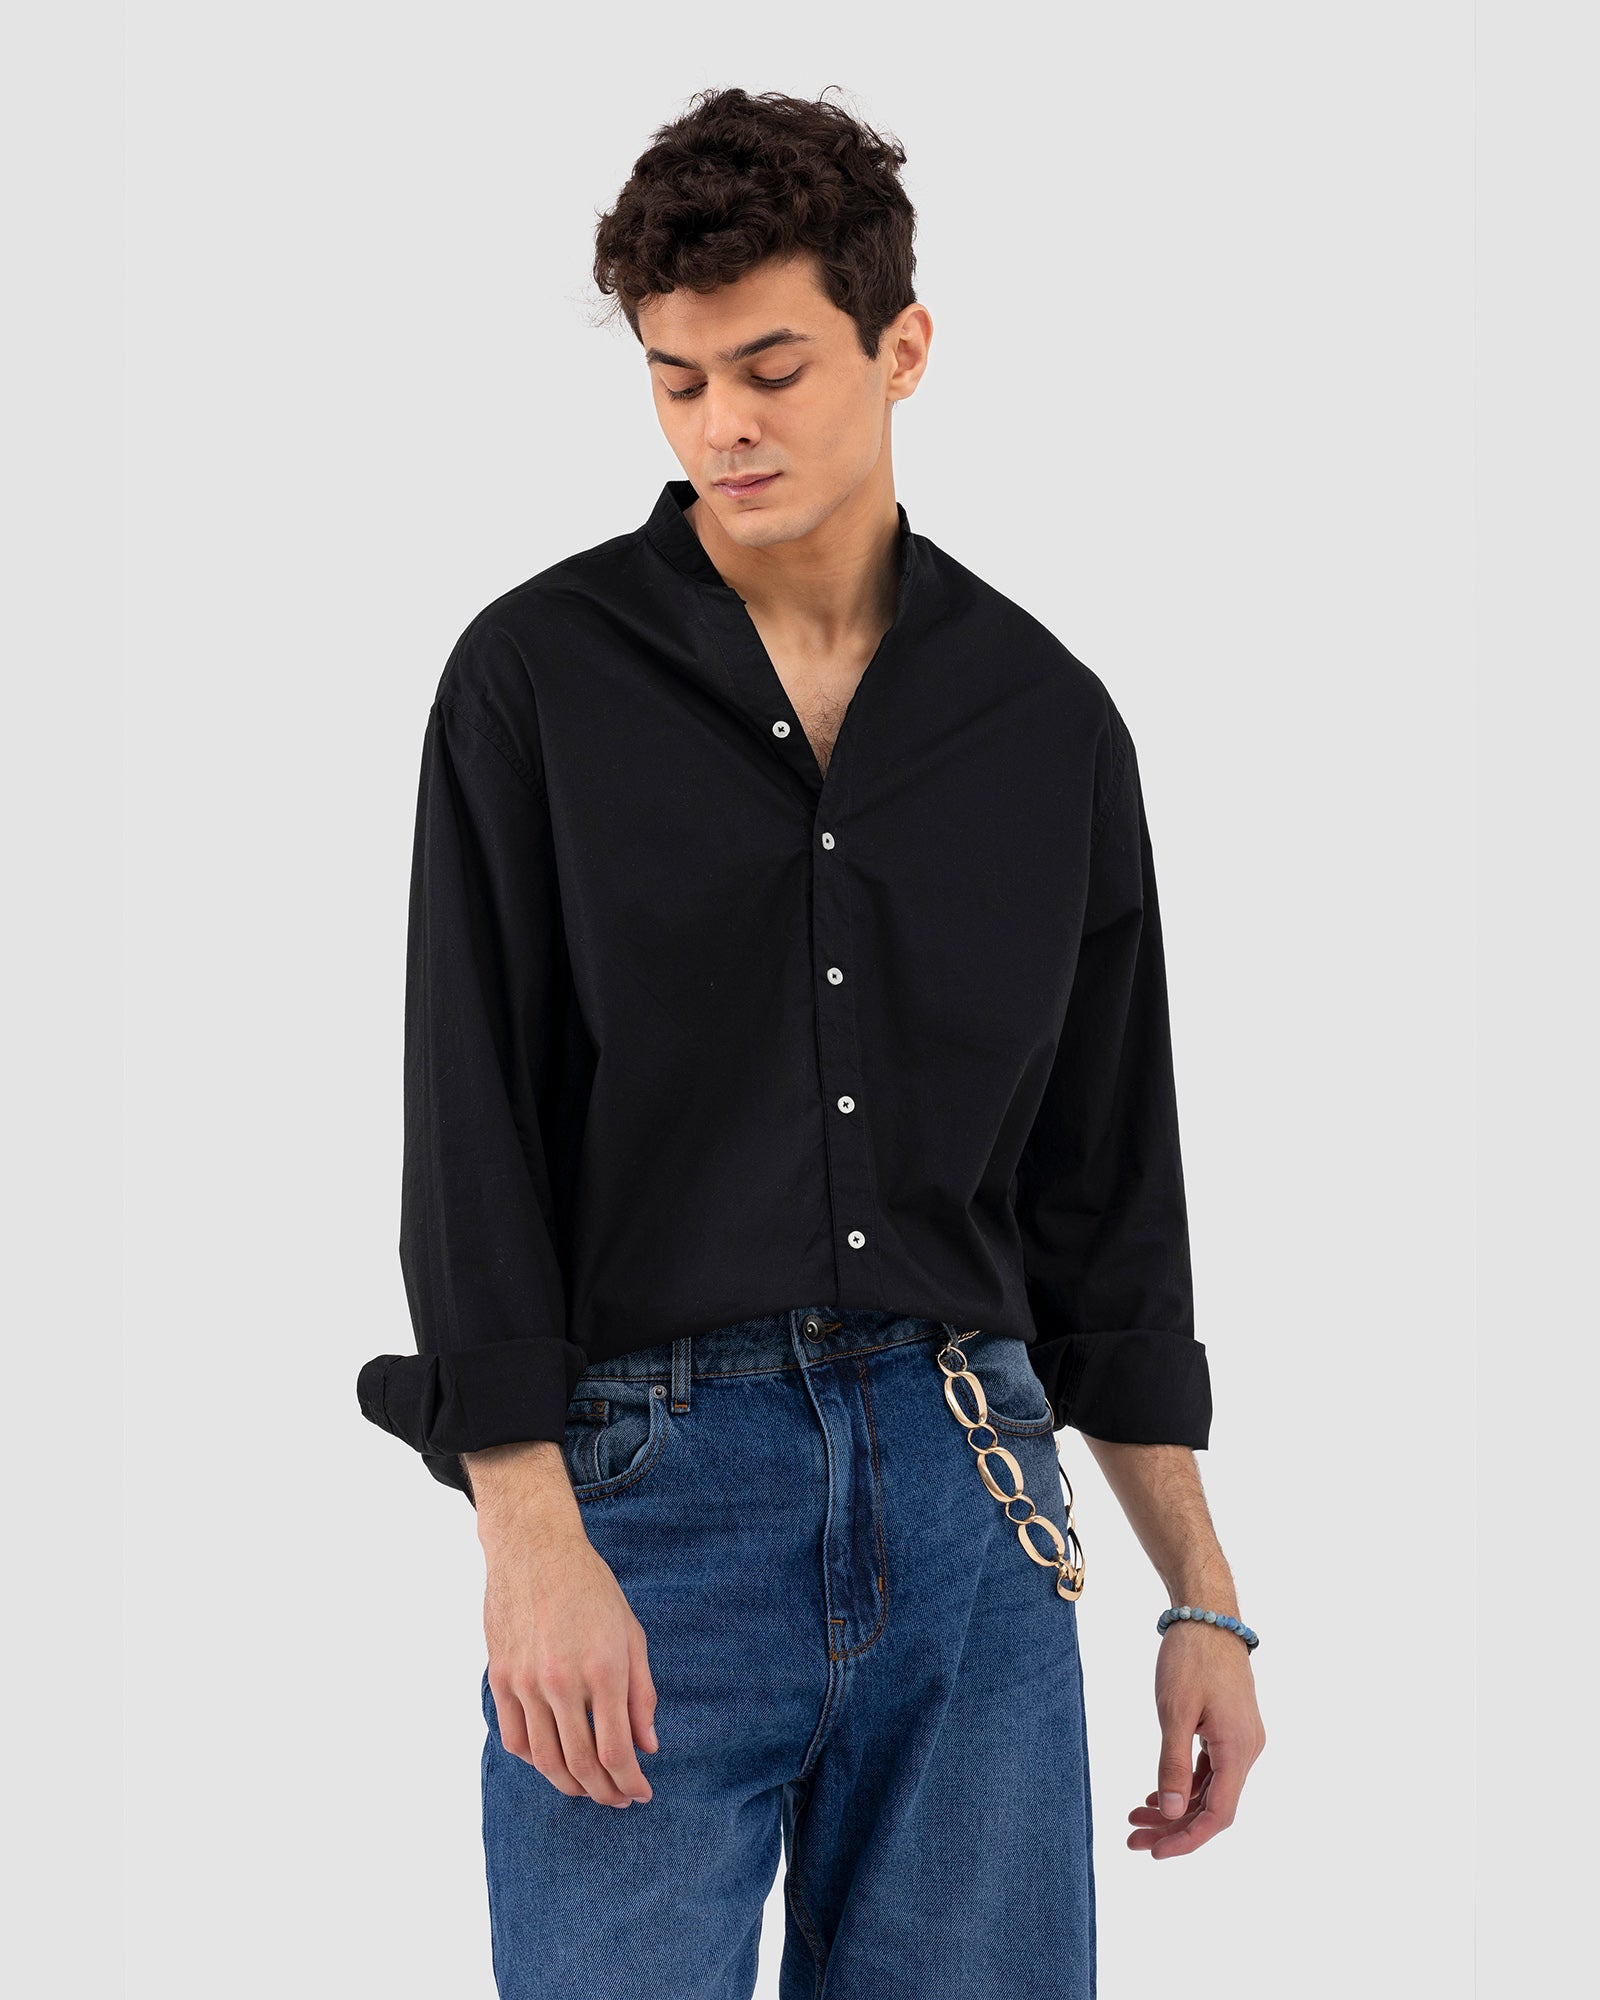 Band Collar Button Down Shirt